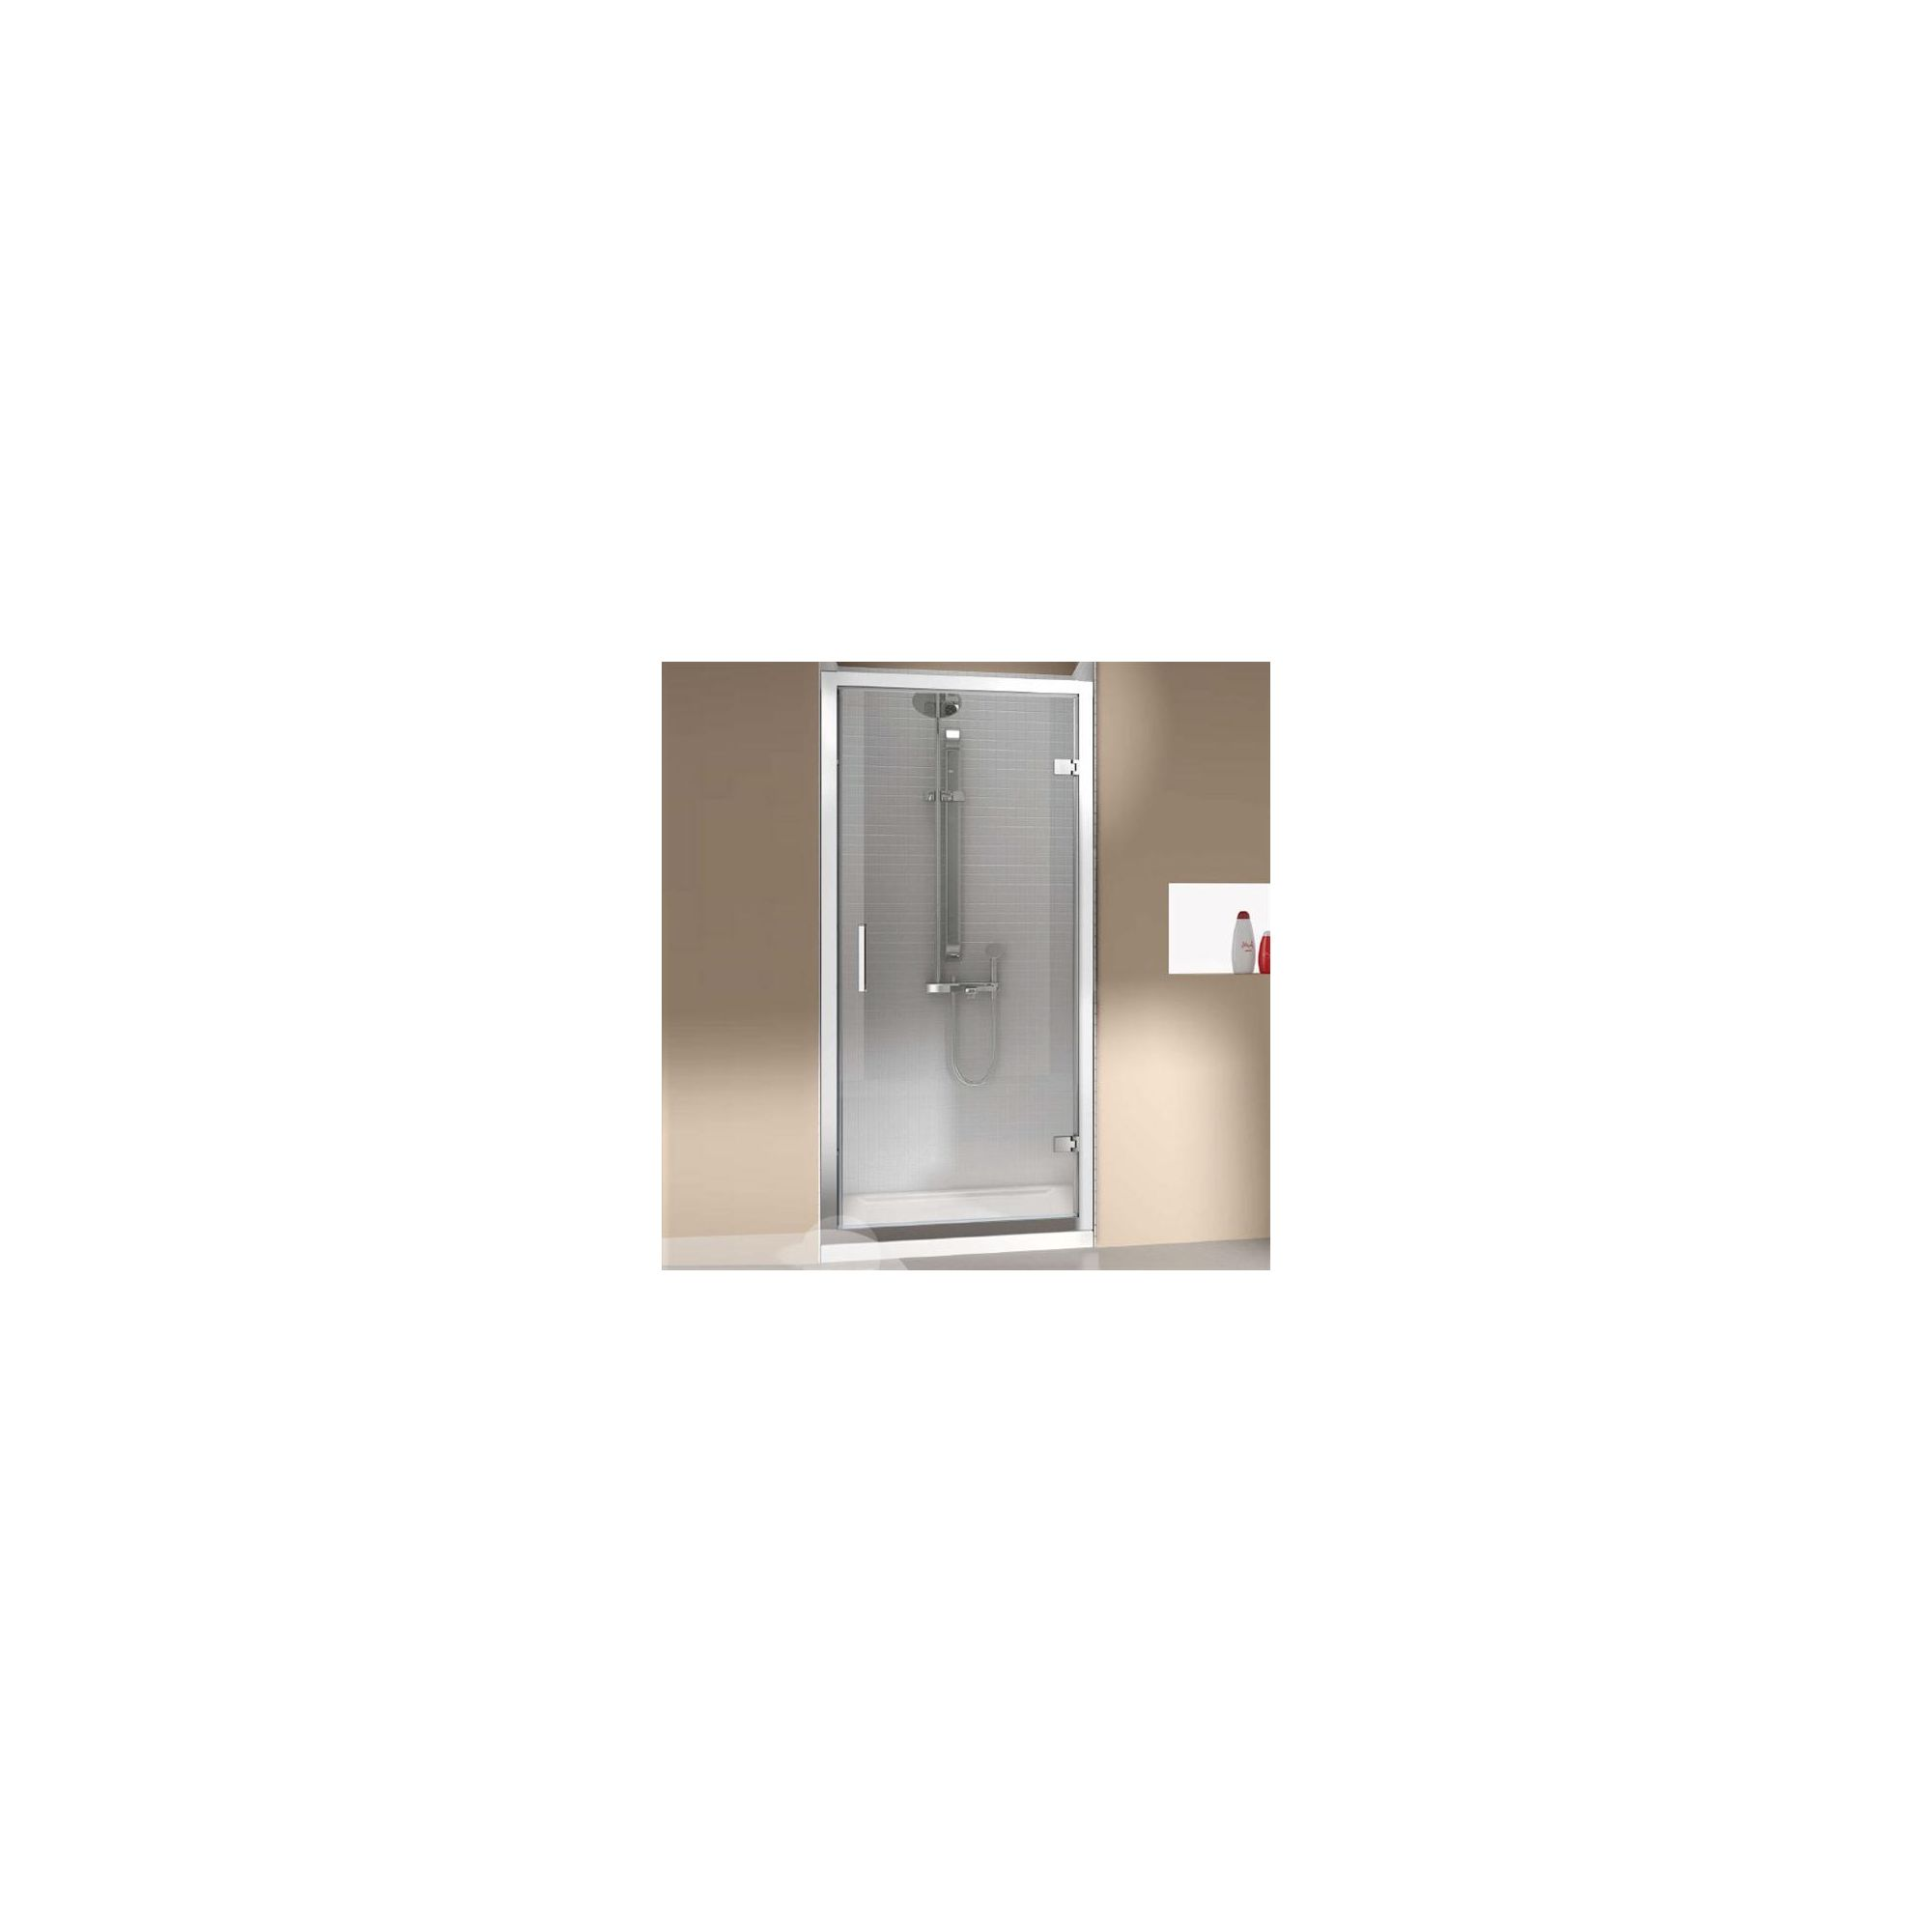 Merlyn Vivid Eight Hinged Shower Door Enclosure 900mm x 900mm (including Merlyte Tray) at Tesco Direct